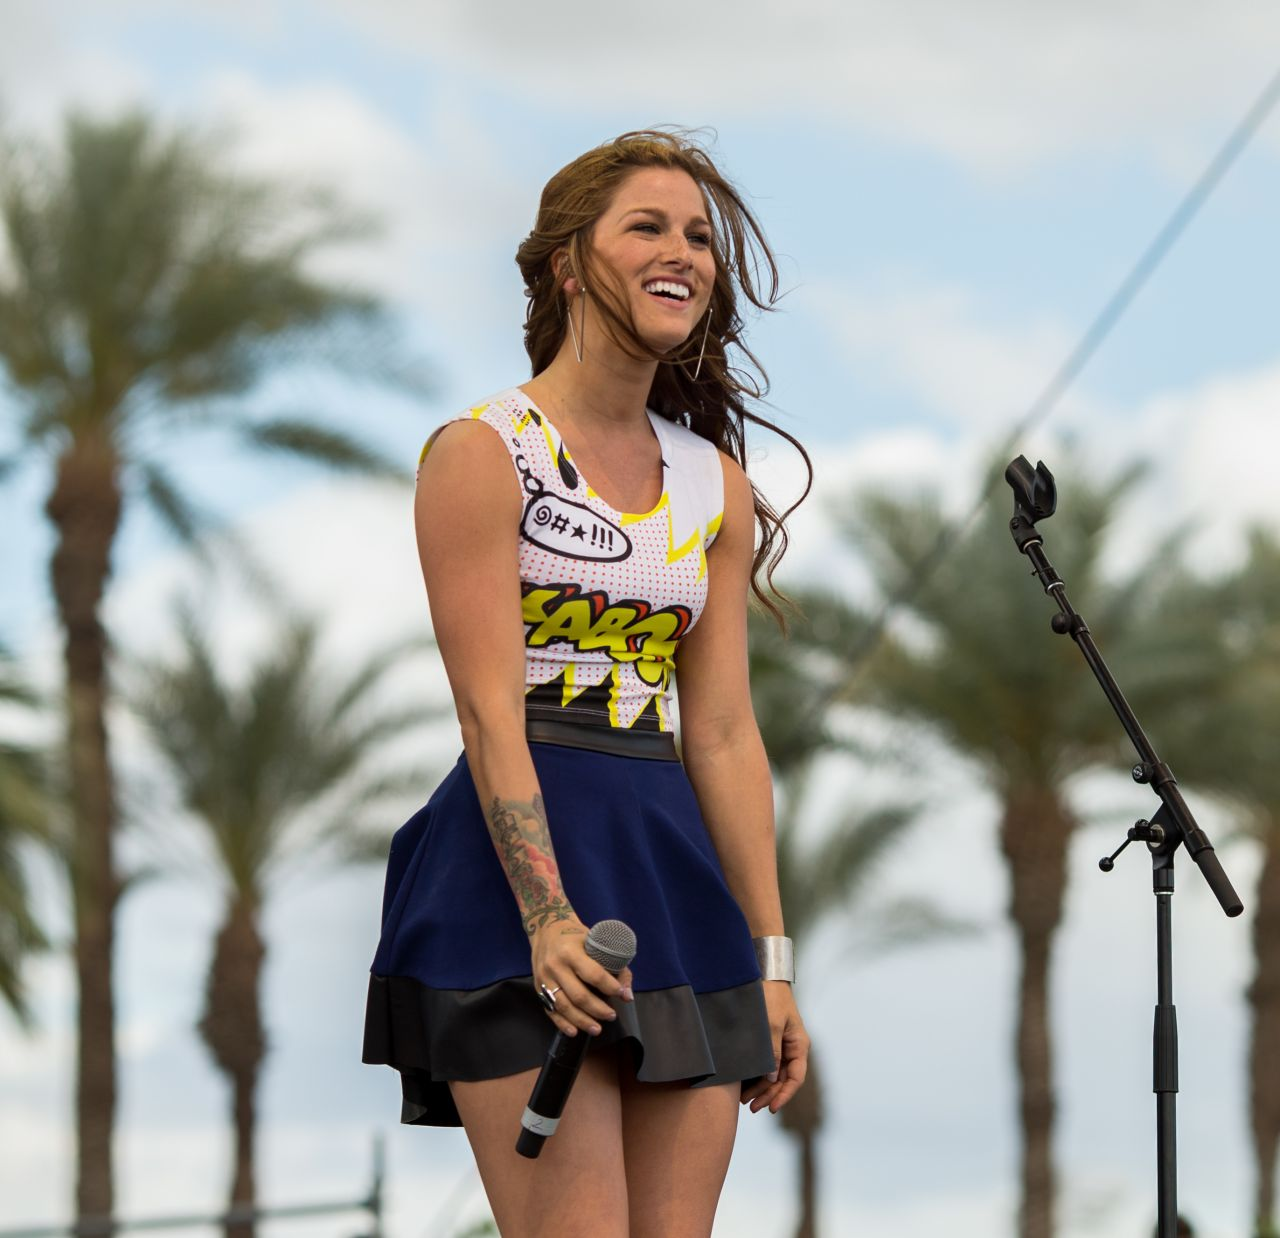 Cassadee Pope Performing At The 2015 Stagecoach California S Country Music Festival In Indio